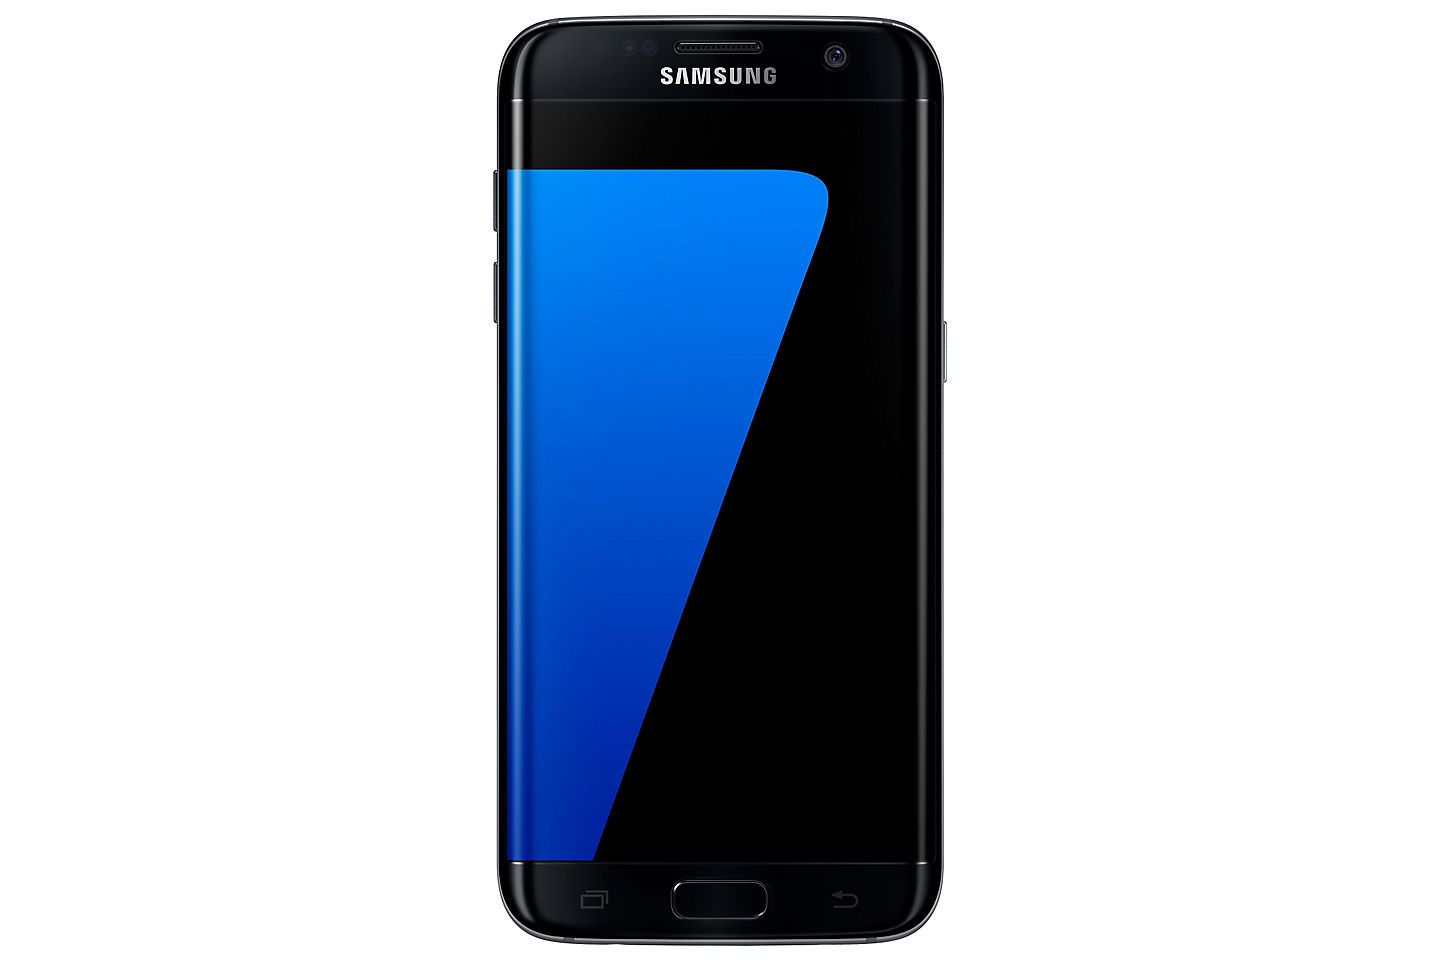 Samsung Galaxy S7 Edge Blue Coral Smartphone 32 Gb Were Doing That By Shattering The Boundaries Of What A Phone Can Do And Its Biggest Thing To Happen Phones Ever